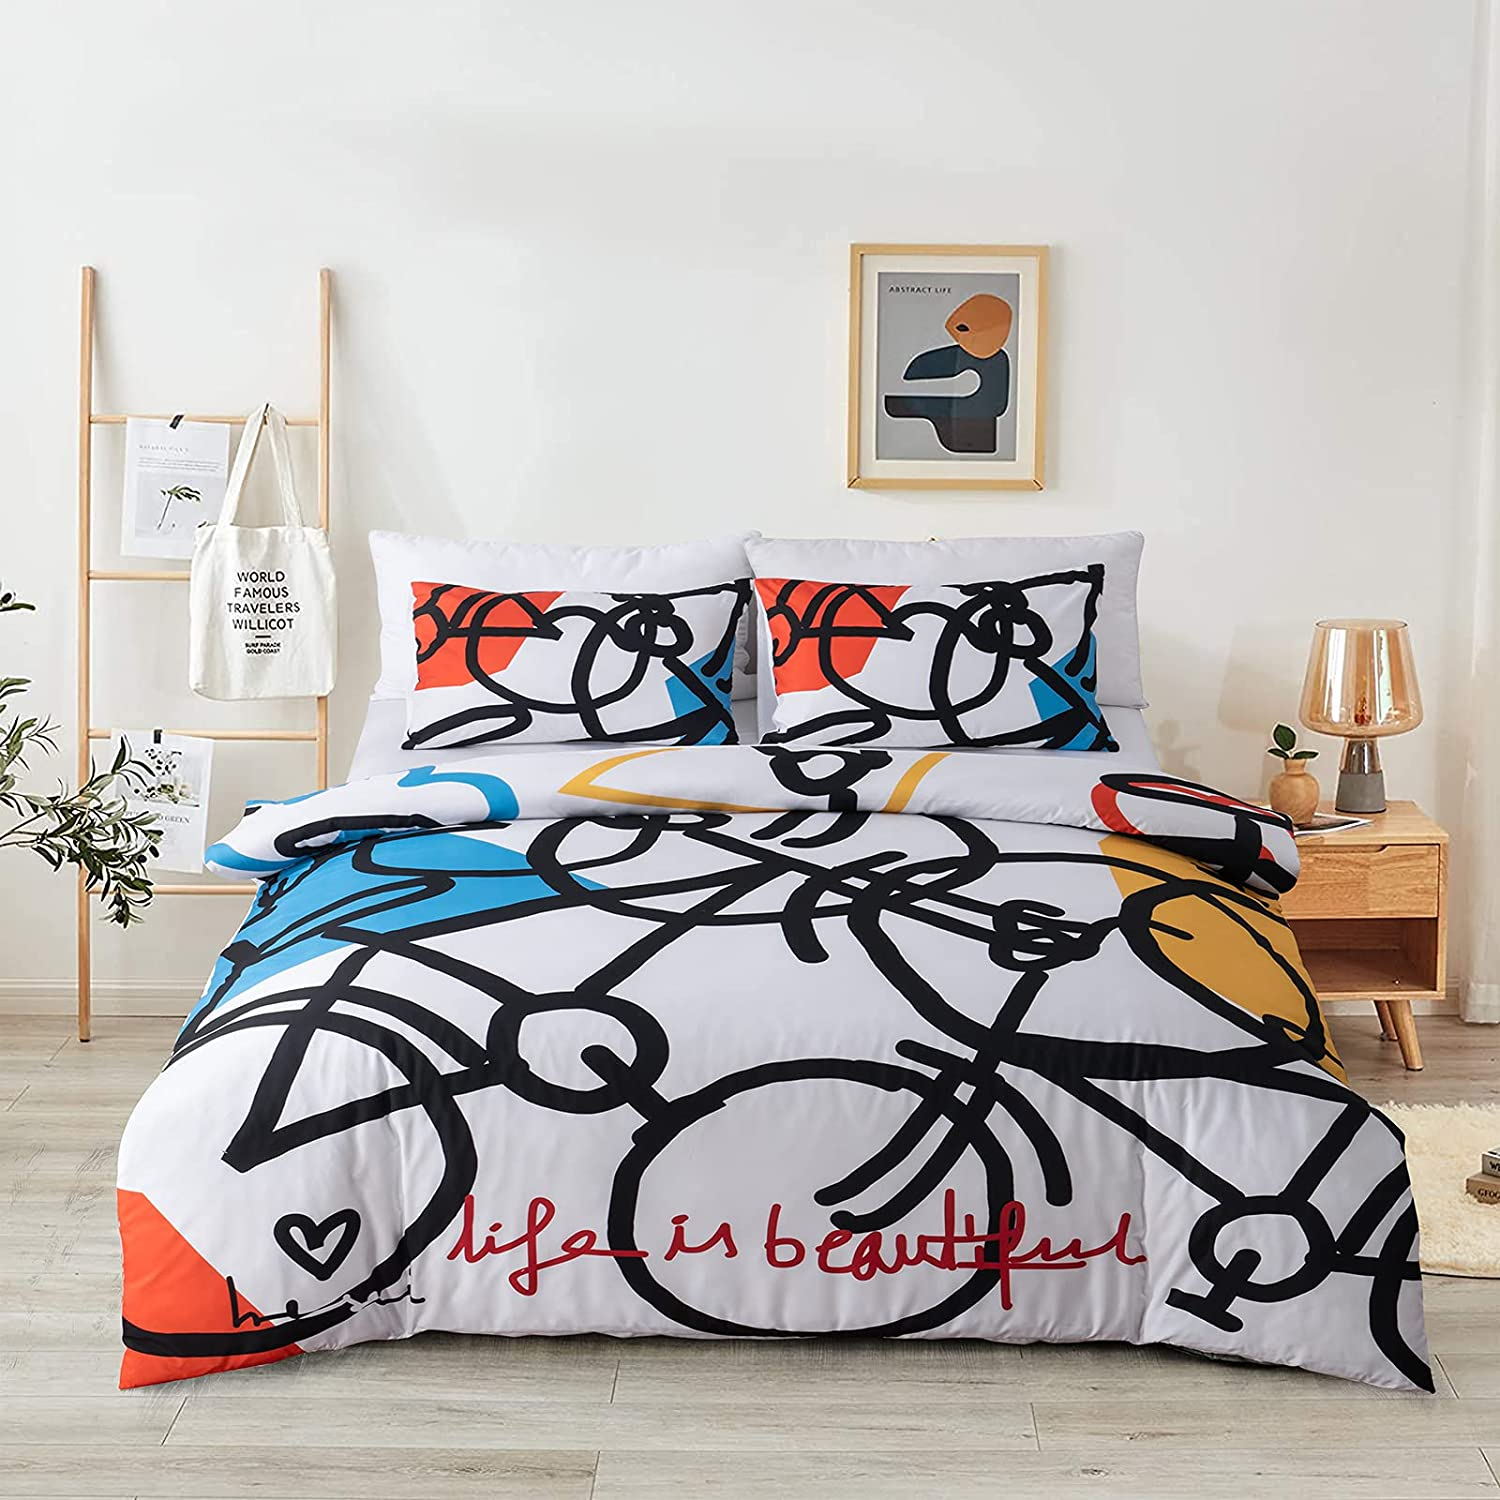 Duvet Cover Twin Soft and Don't miss the campaign Kids Washington Mall Brushed Microfiber Breathable Boy